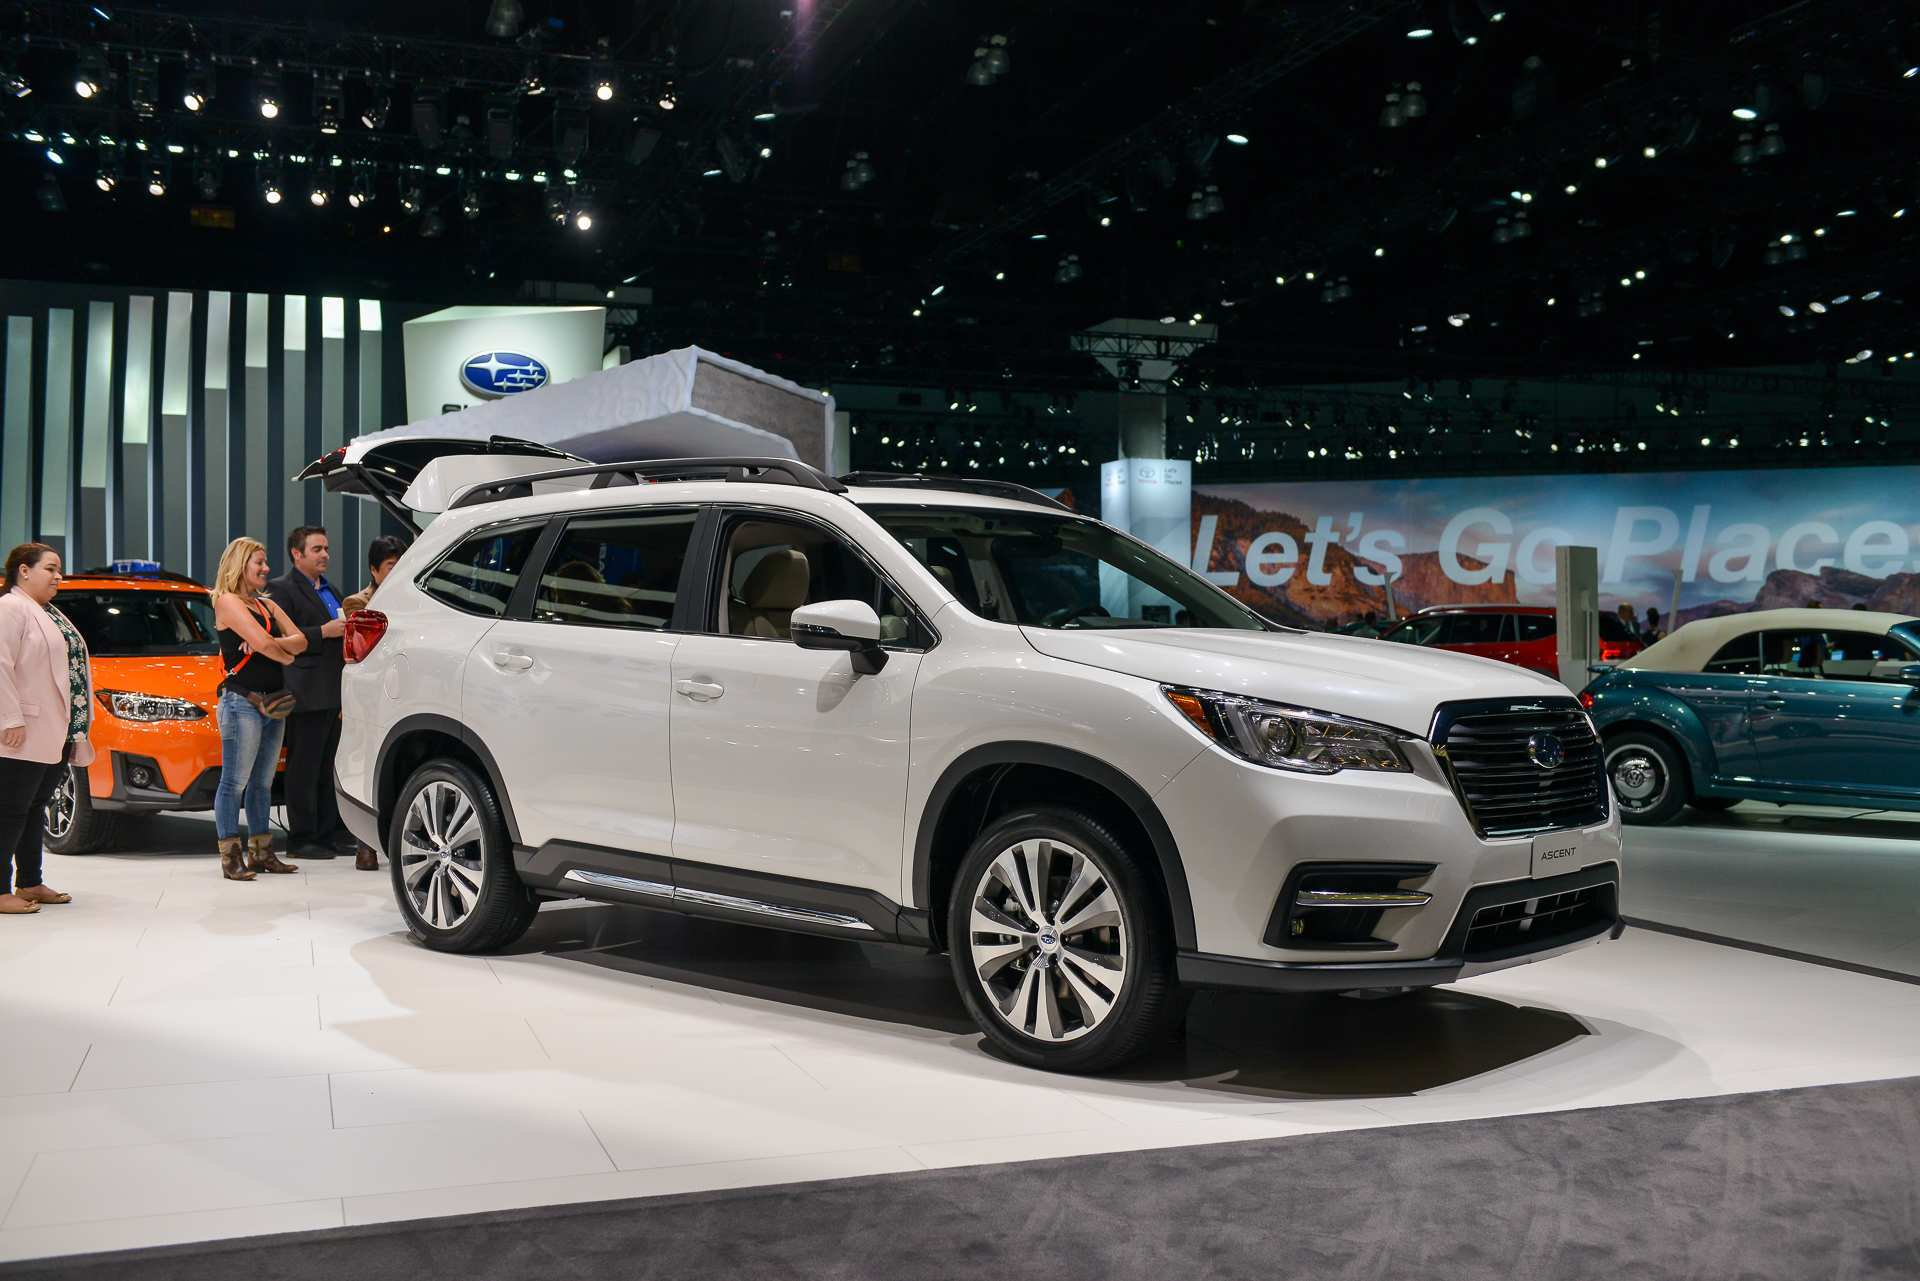 73 Gallery of 2019 Subaru Ascent Mpg Wallpaper for 2019 Subaru Ascent Mpg